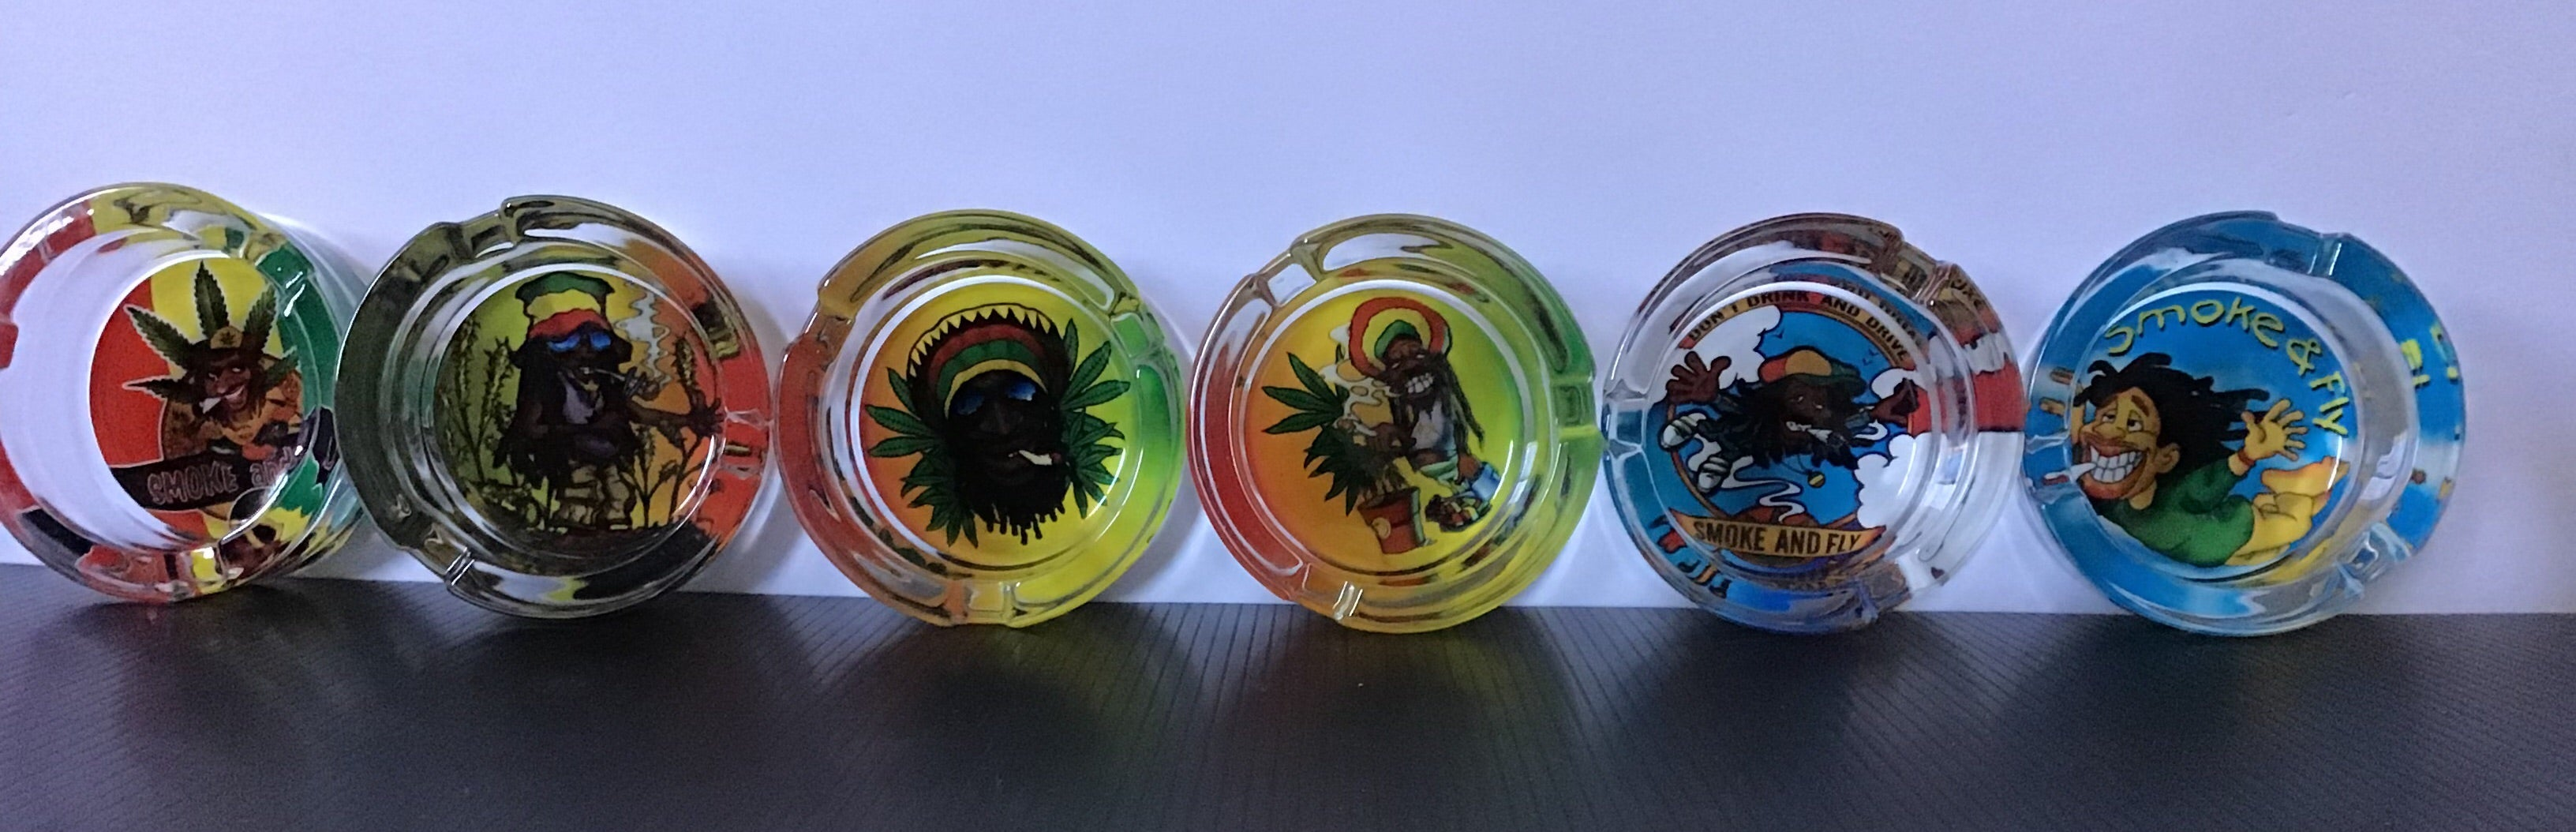 Happy Smoking Rasta and Jamaican Design Glass Ashtray yoga, yoga smokes, tattoo, face, nails, nail, glass retail, online, web, weborder, website, tanks, lounge, odor, smoke shop near me, liquid smoke, smoke shop, lounge, smoke lounge, stoner, smoke, high, life, highlife, dabber, love, stoned, highsociety.